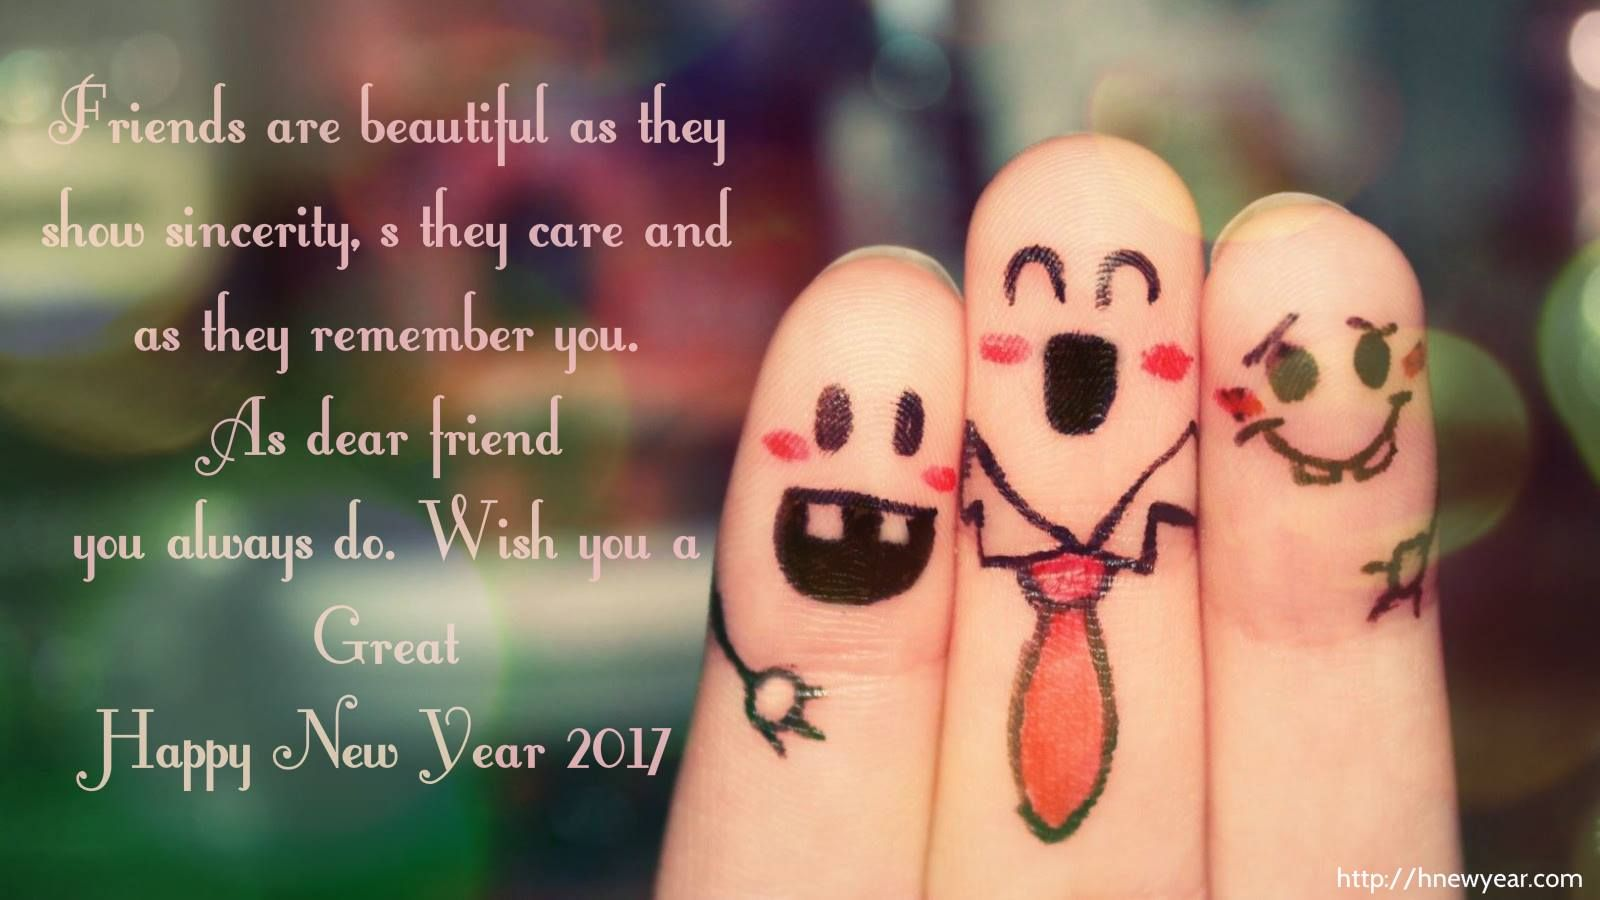 New year wishes for friendship 2017 new year is a new beginning of new year wishes for friendship 2017 new year is a new beginning of your life kristyandbryce Gallery